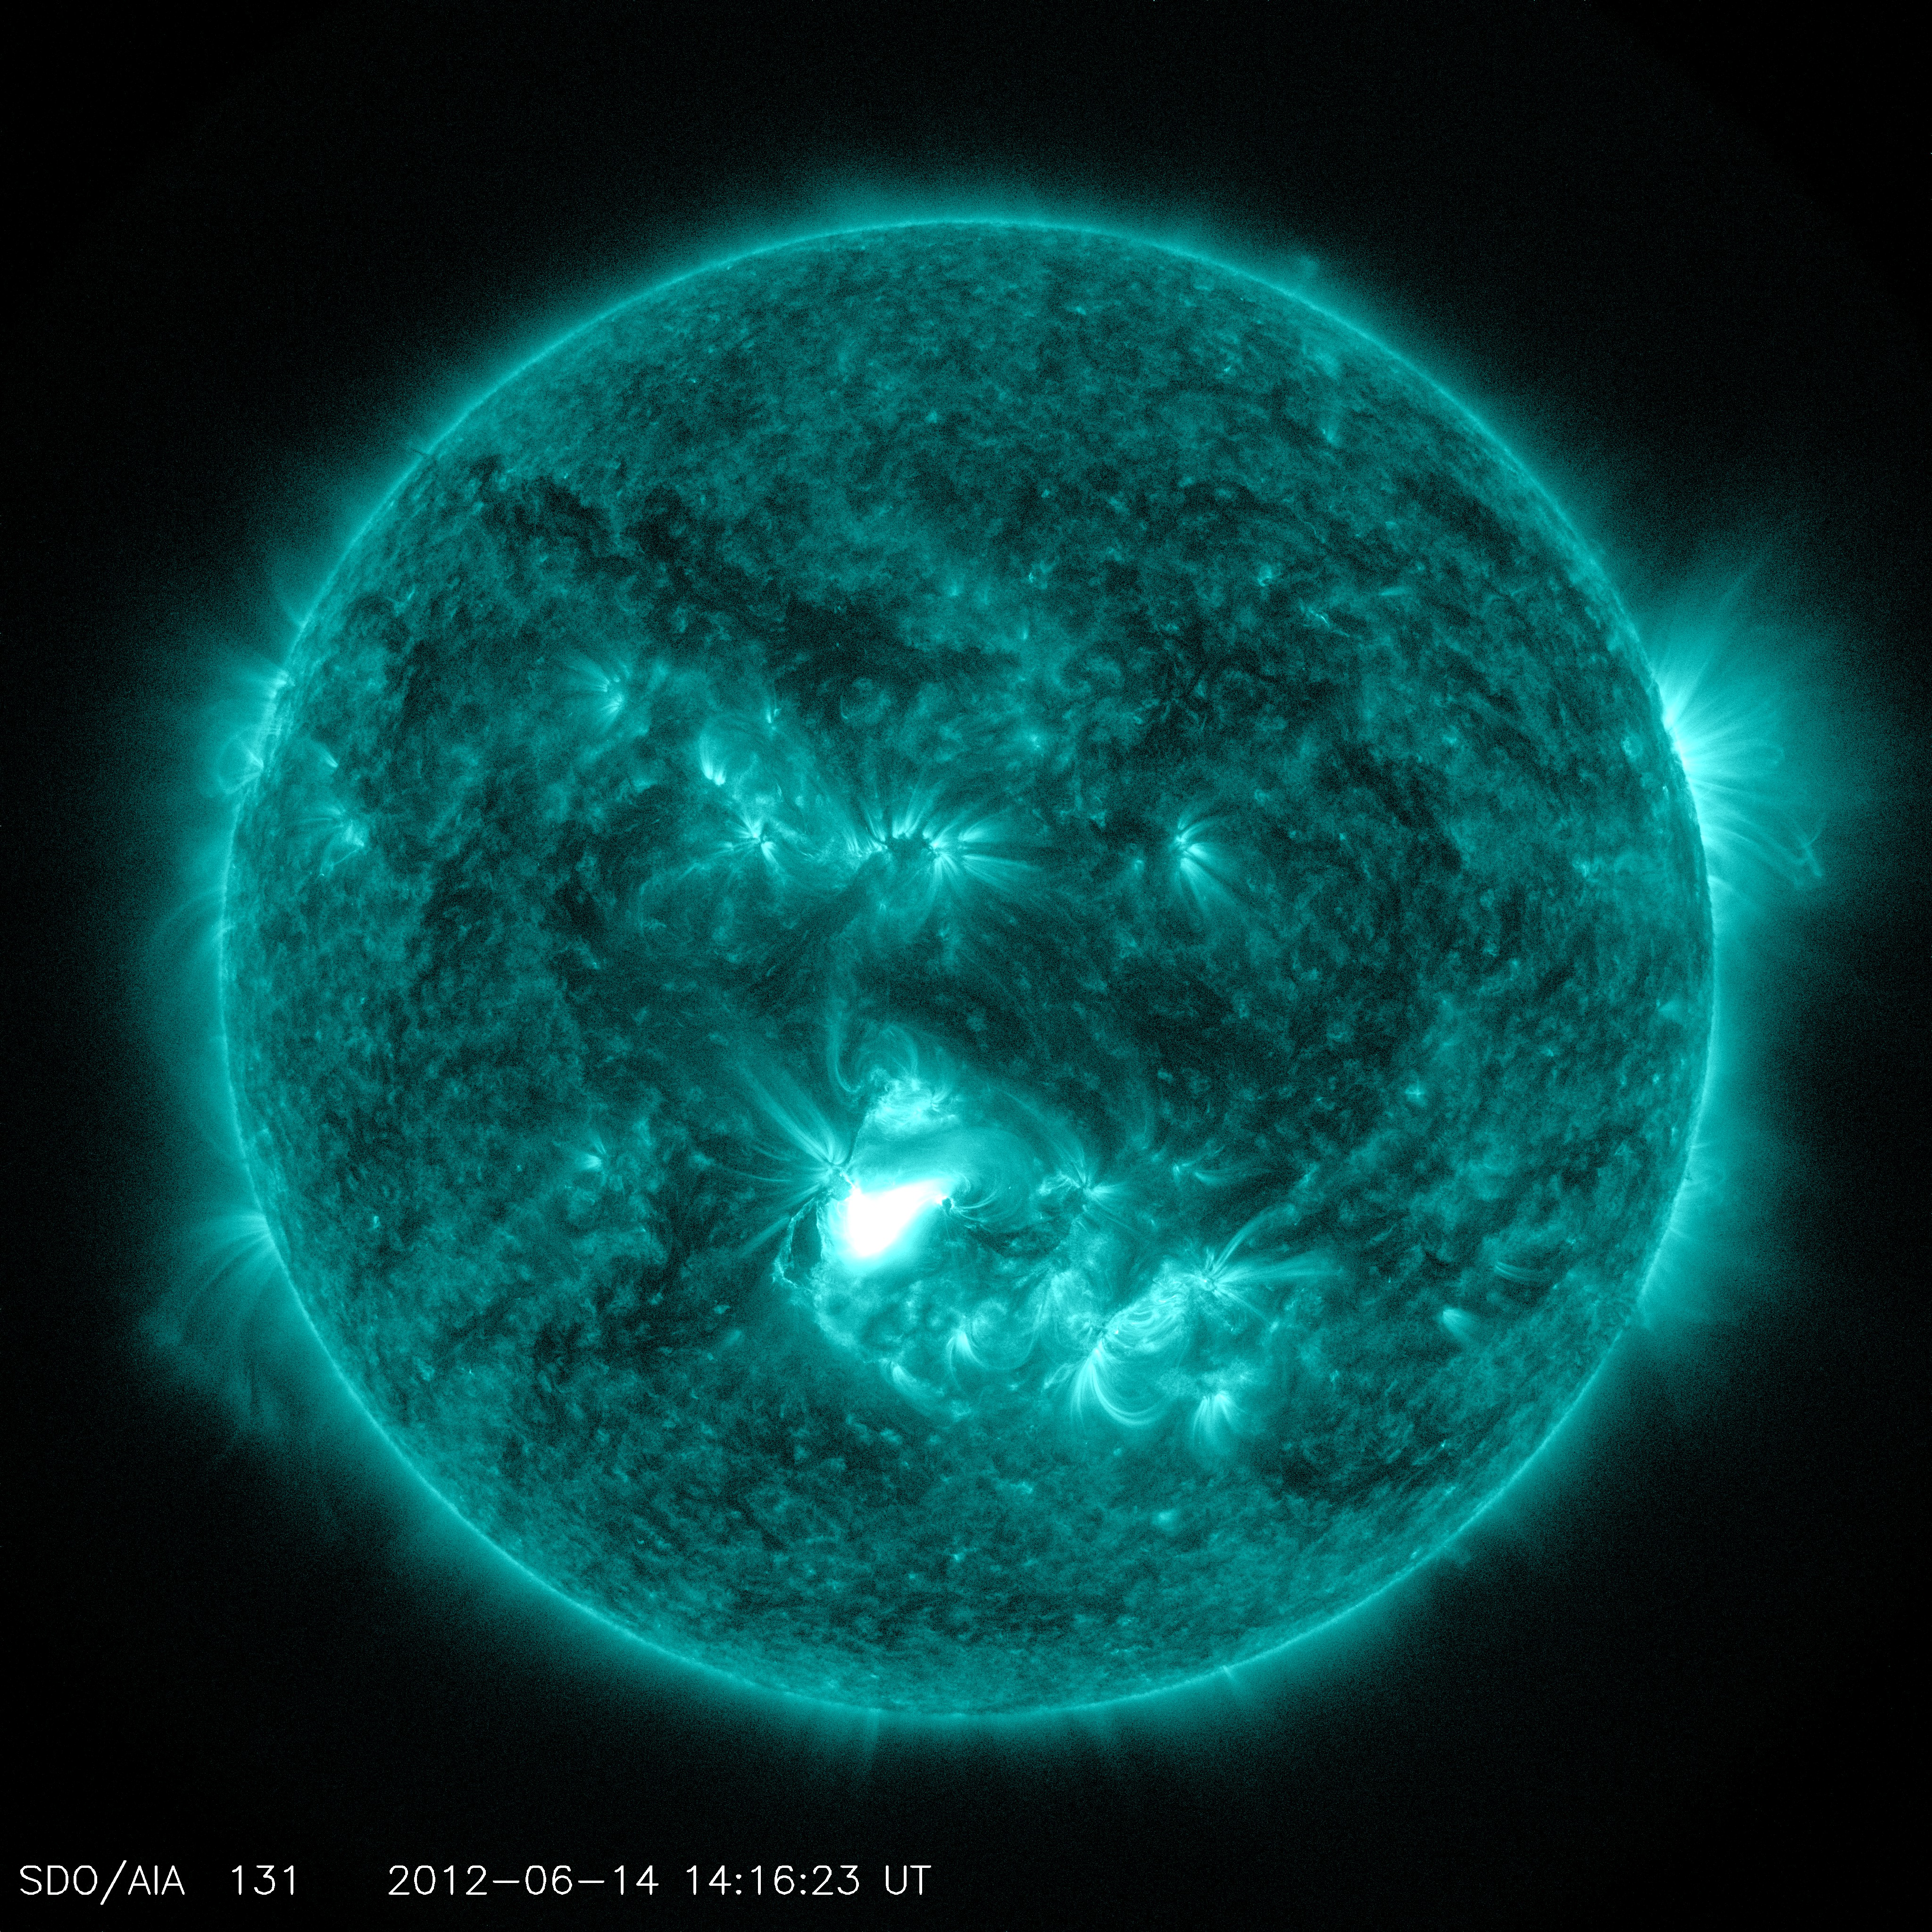 NASA - UPDATE: Two CMEs Hit Earth's Magnetosphere